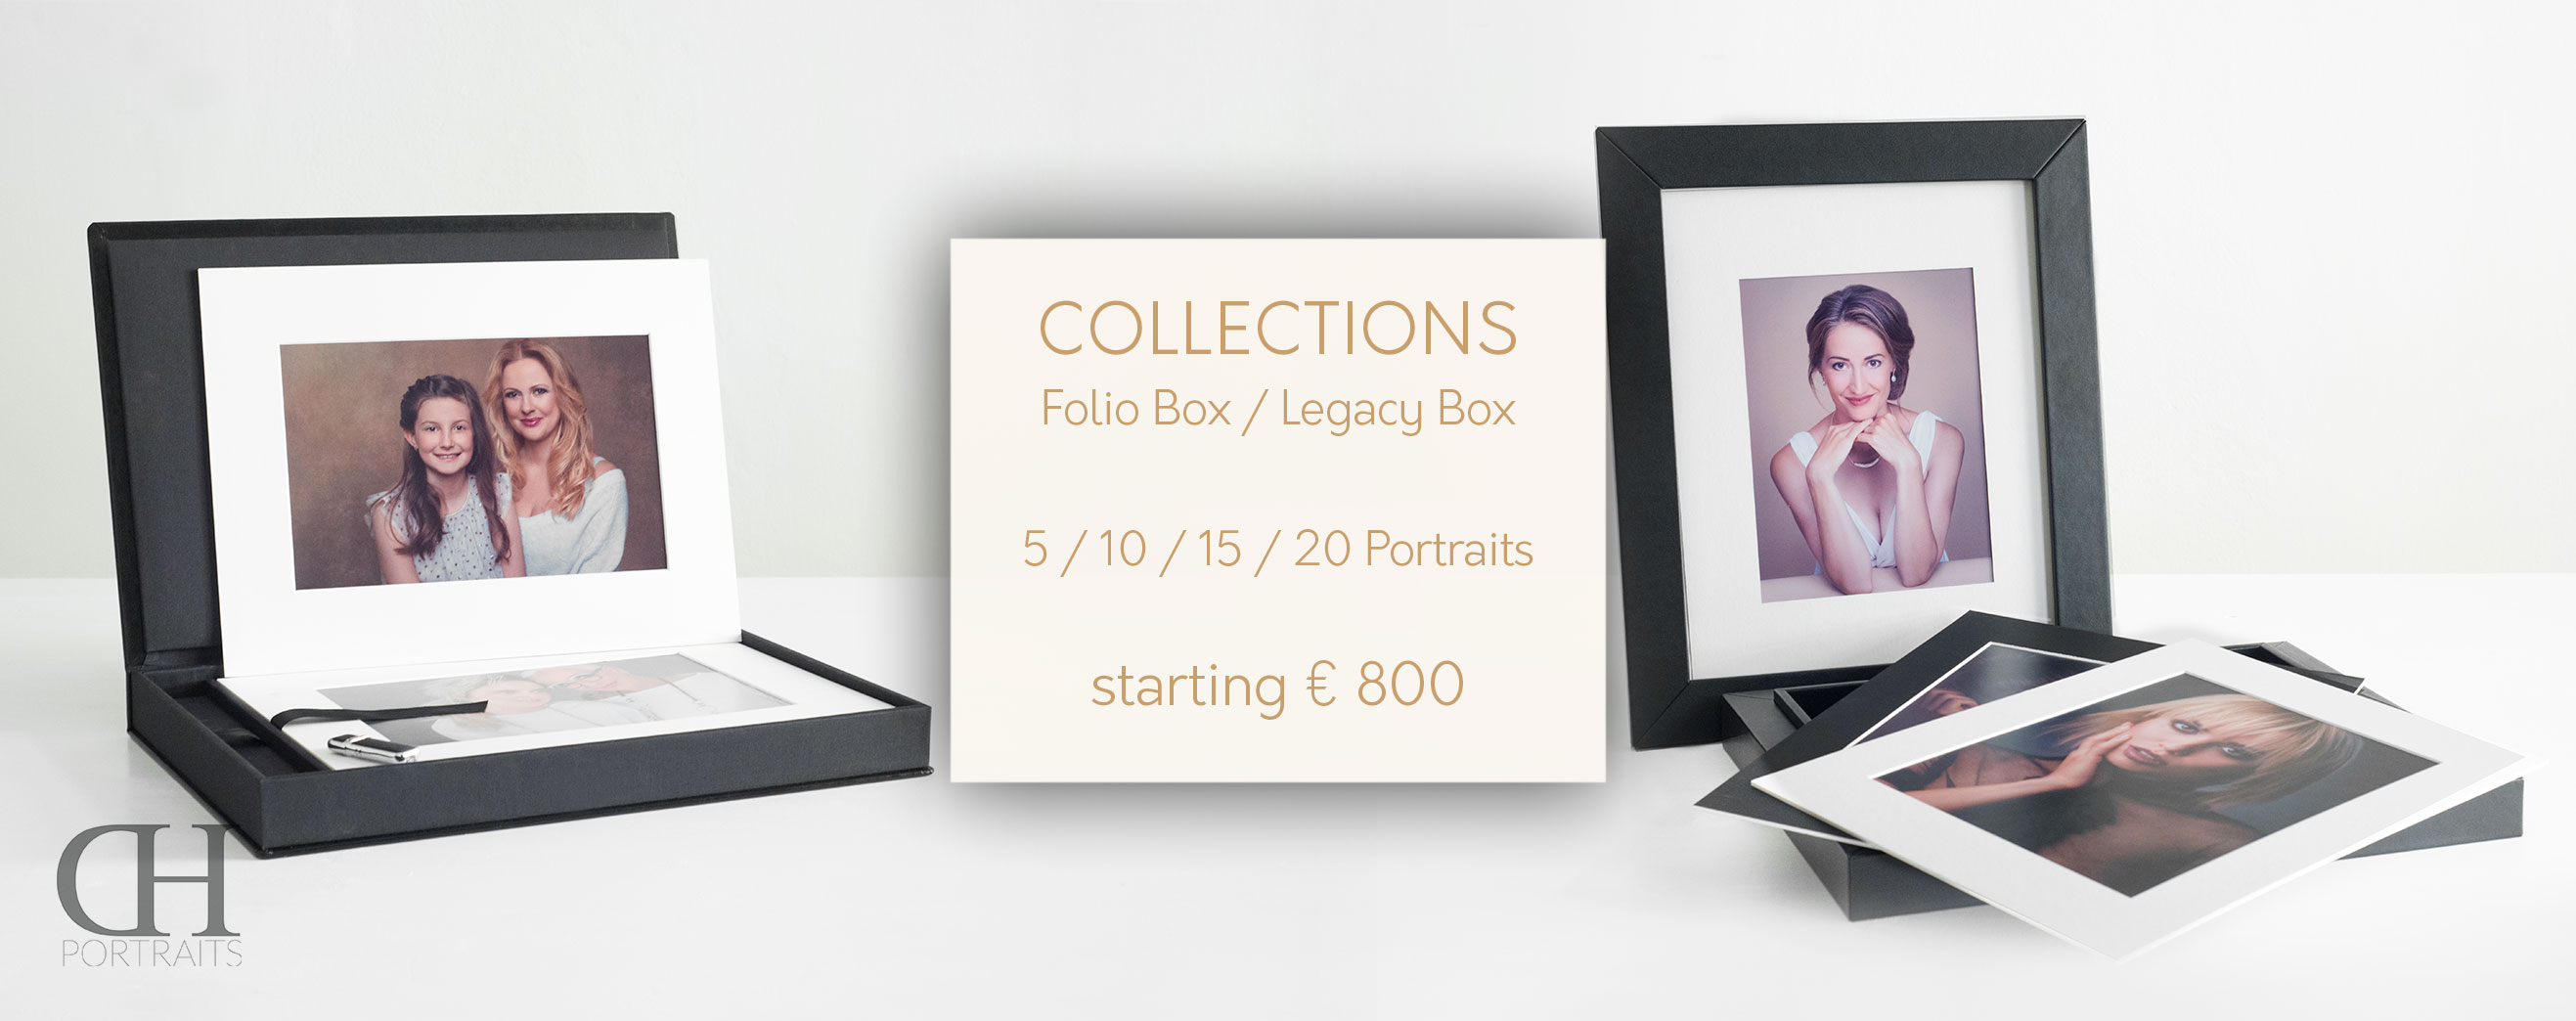 DESKTOP---Collections---Pricing-2019---Dan-Hostettler-Portraits